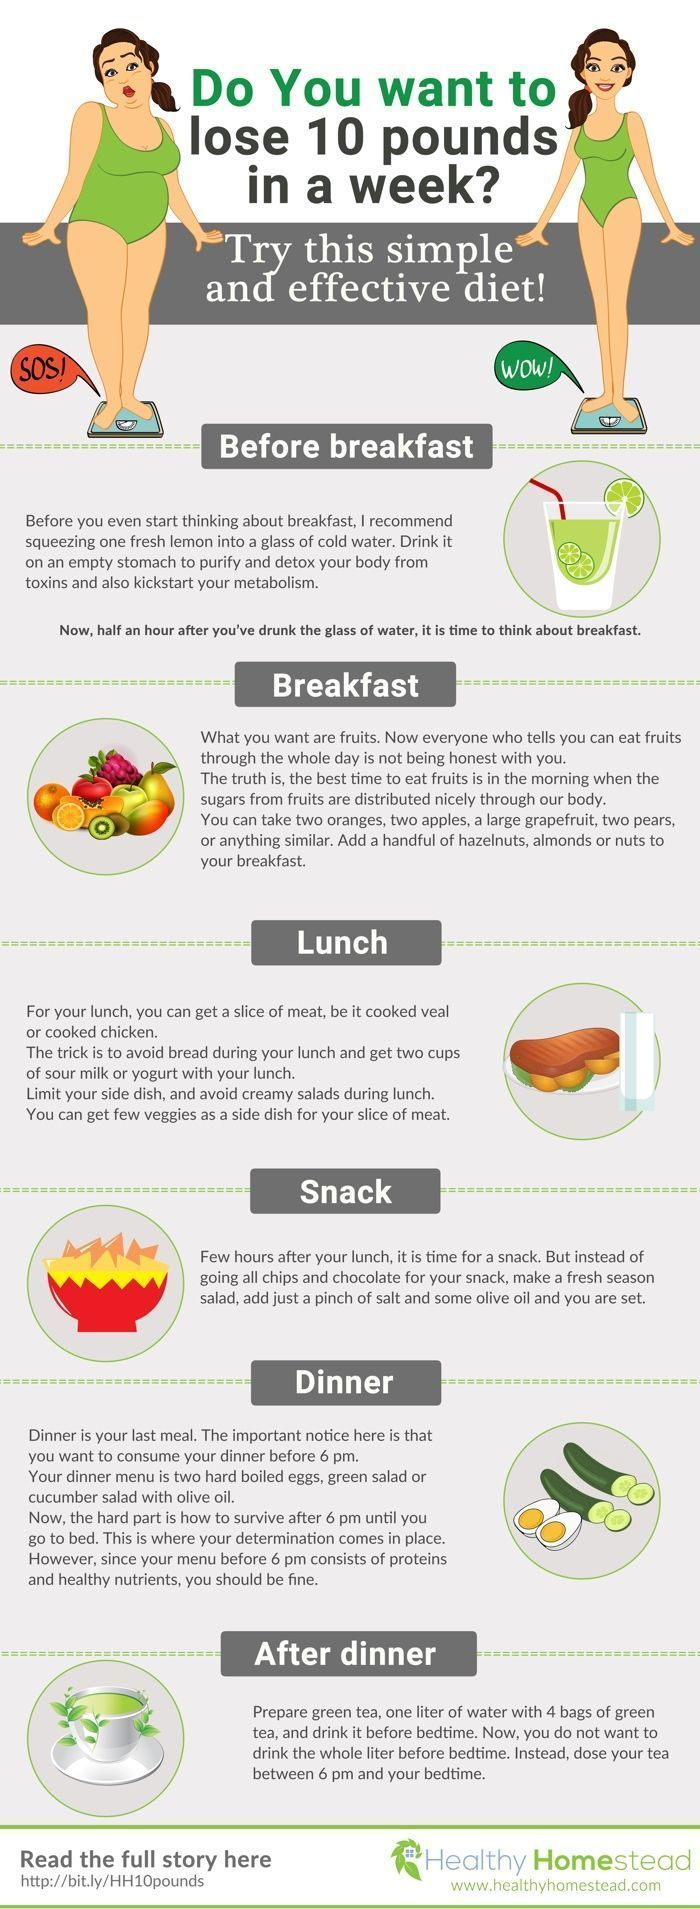 1447 best weight loss images on pinterest exercises clean eating do you want to lose 10 pounds in a week try this simple and effective lose fat fast dietbest nvjuhfo Choice Image